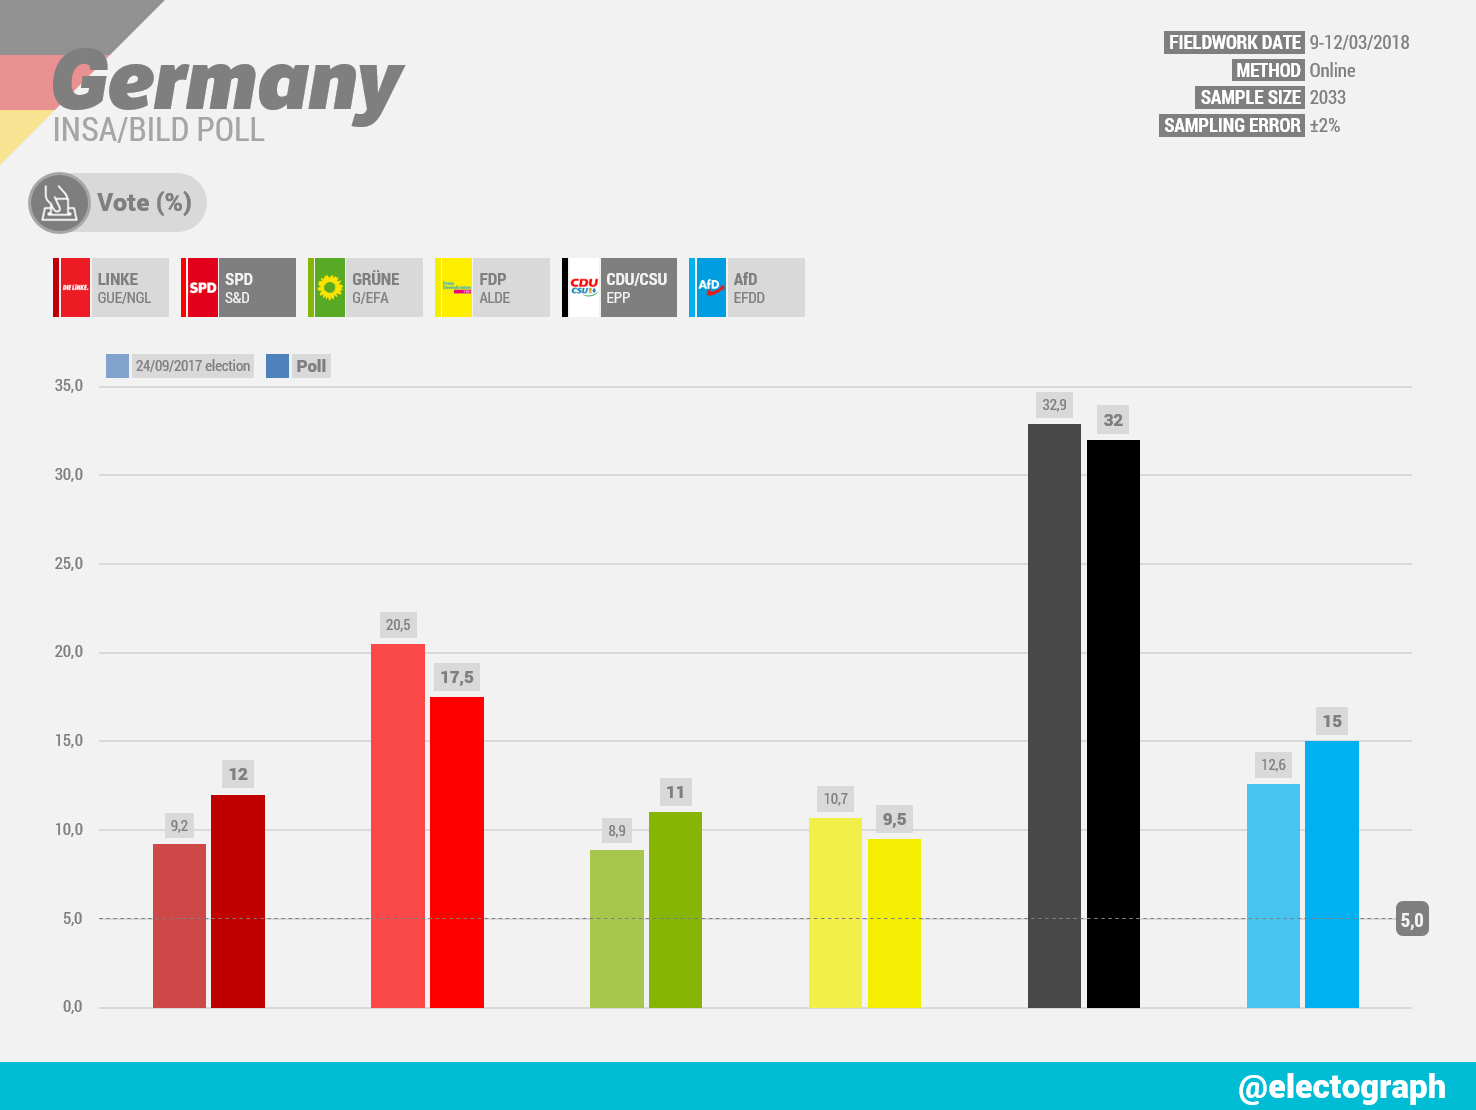 GERMANY INSA poll chart for Bild, March 2018